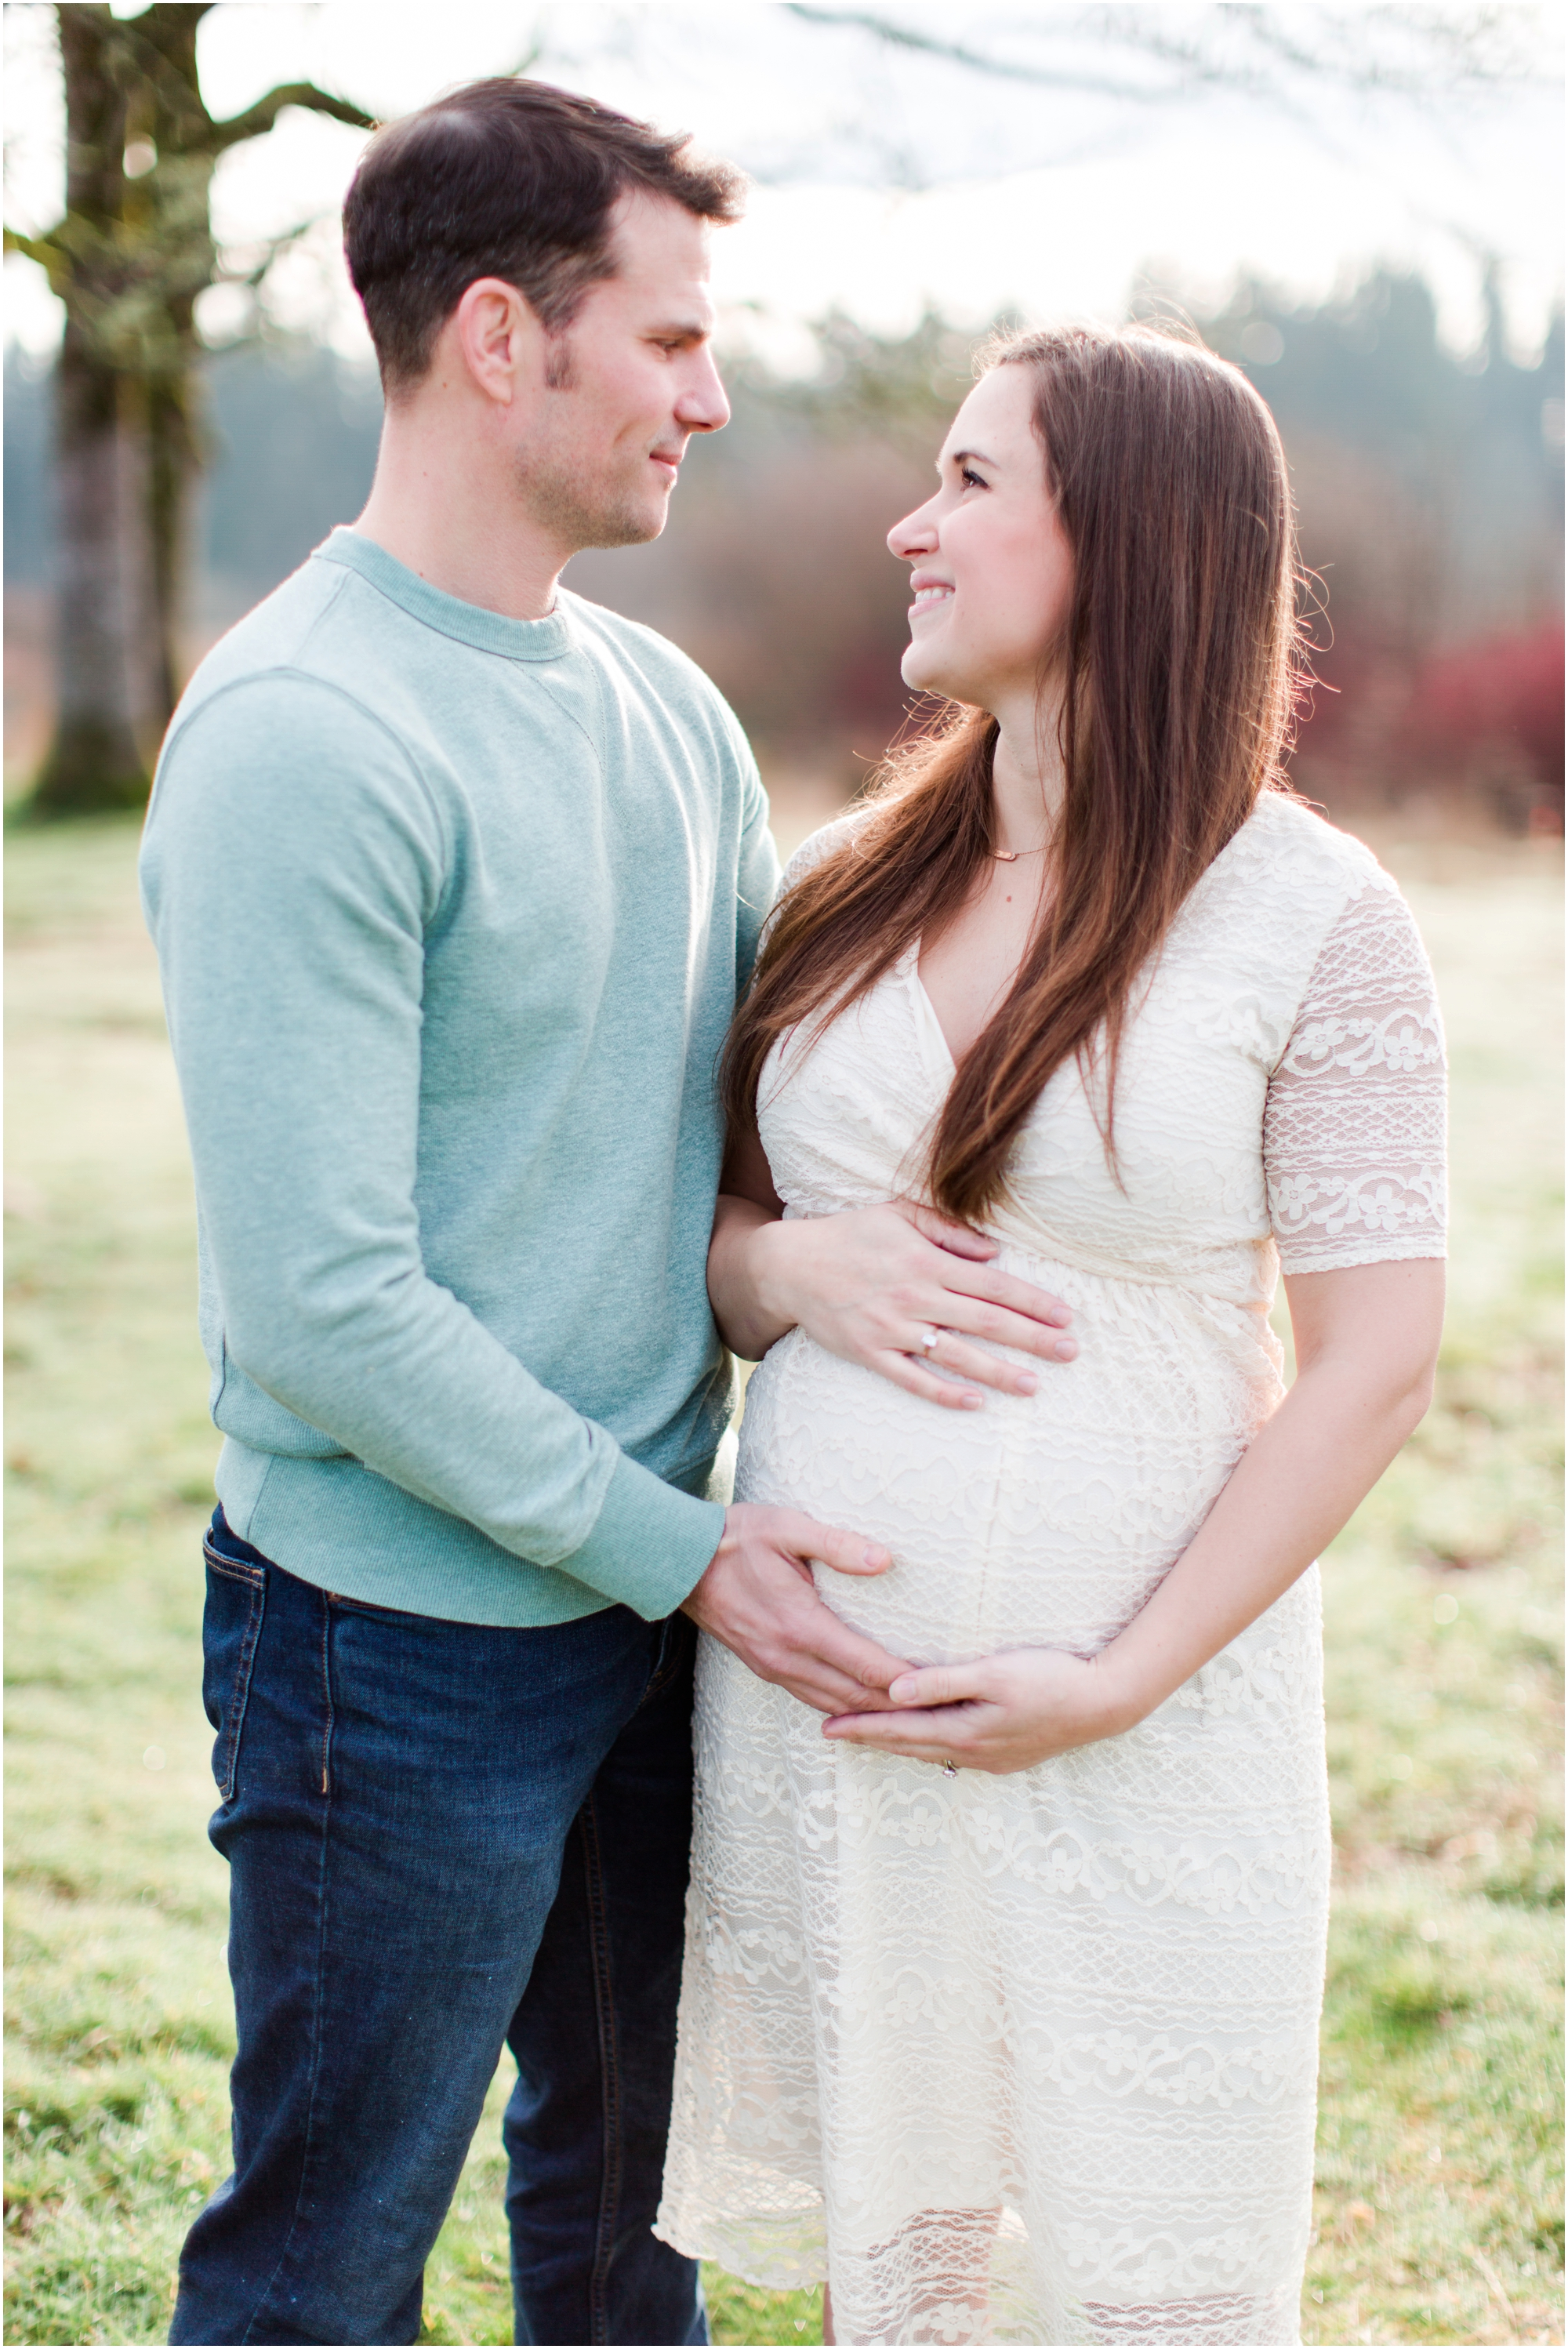 Maternity family photos by Briana Calderon Photography based in the Greater Seattle & Tacoma, WA_1019.jpg